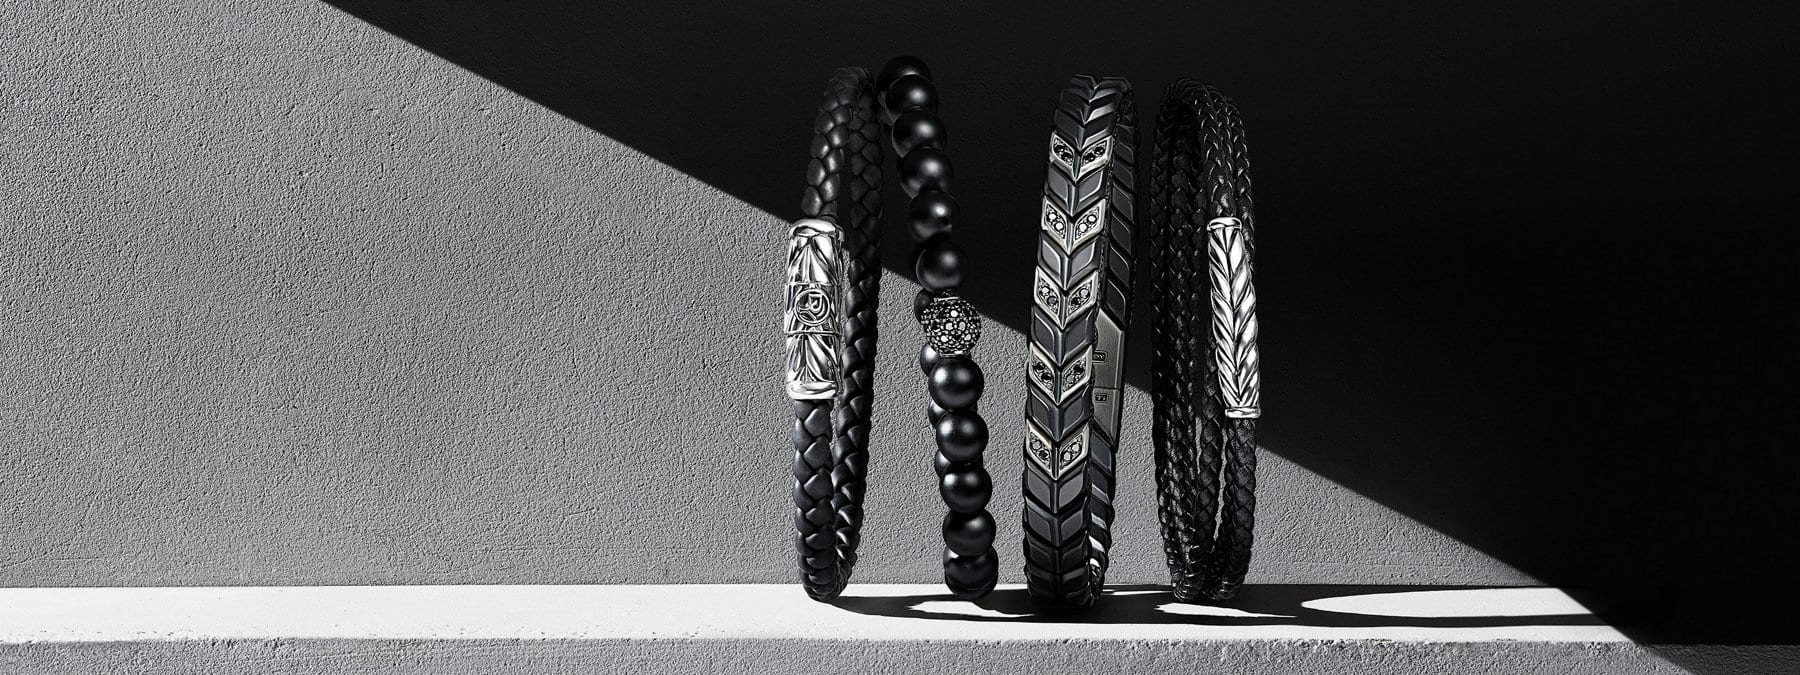 A color photograph shows a row of four David Yurman men's bracelets from the Chevron and Spiritual Beads collections standing upright on grey concrete with a graphic shadow in the background. Two of the bracelets are crafted from sterling silver with woven black rubber or woven smooth black leather. One bracelet is crafted from black onyx beads with sterling silver and pavé black diamonds. One bracelet is crafted from black titanium and black diamonds.